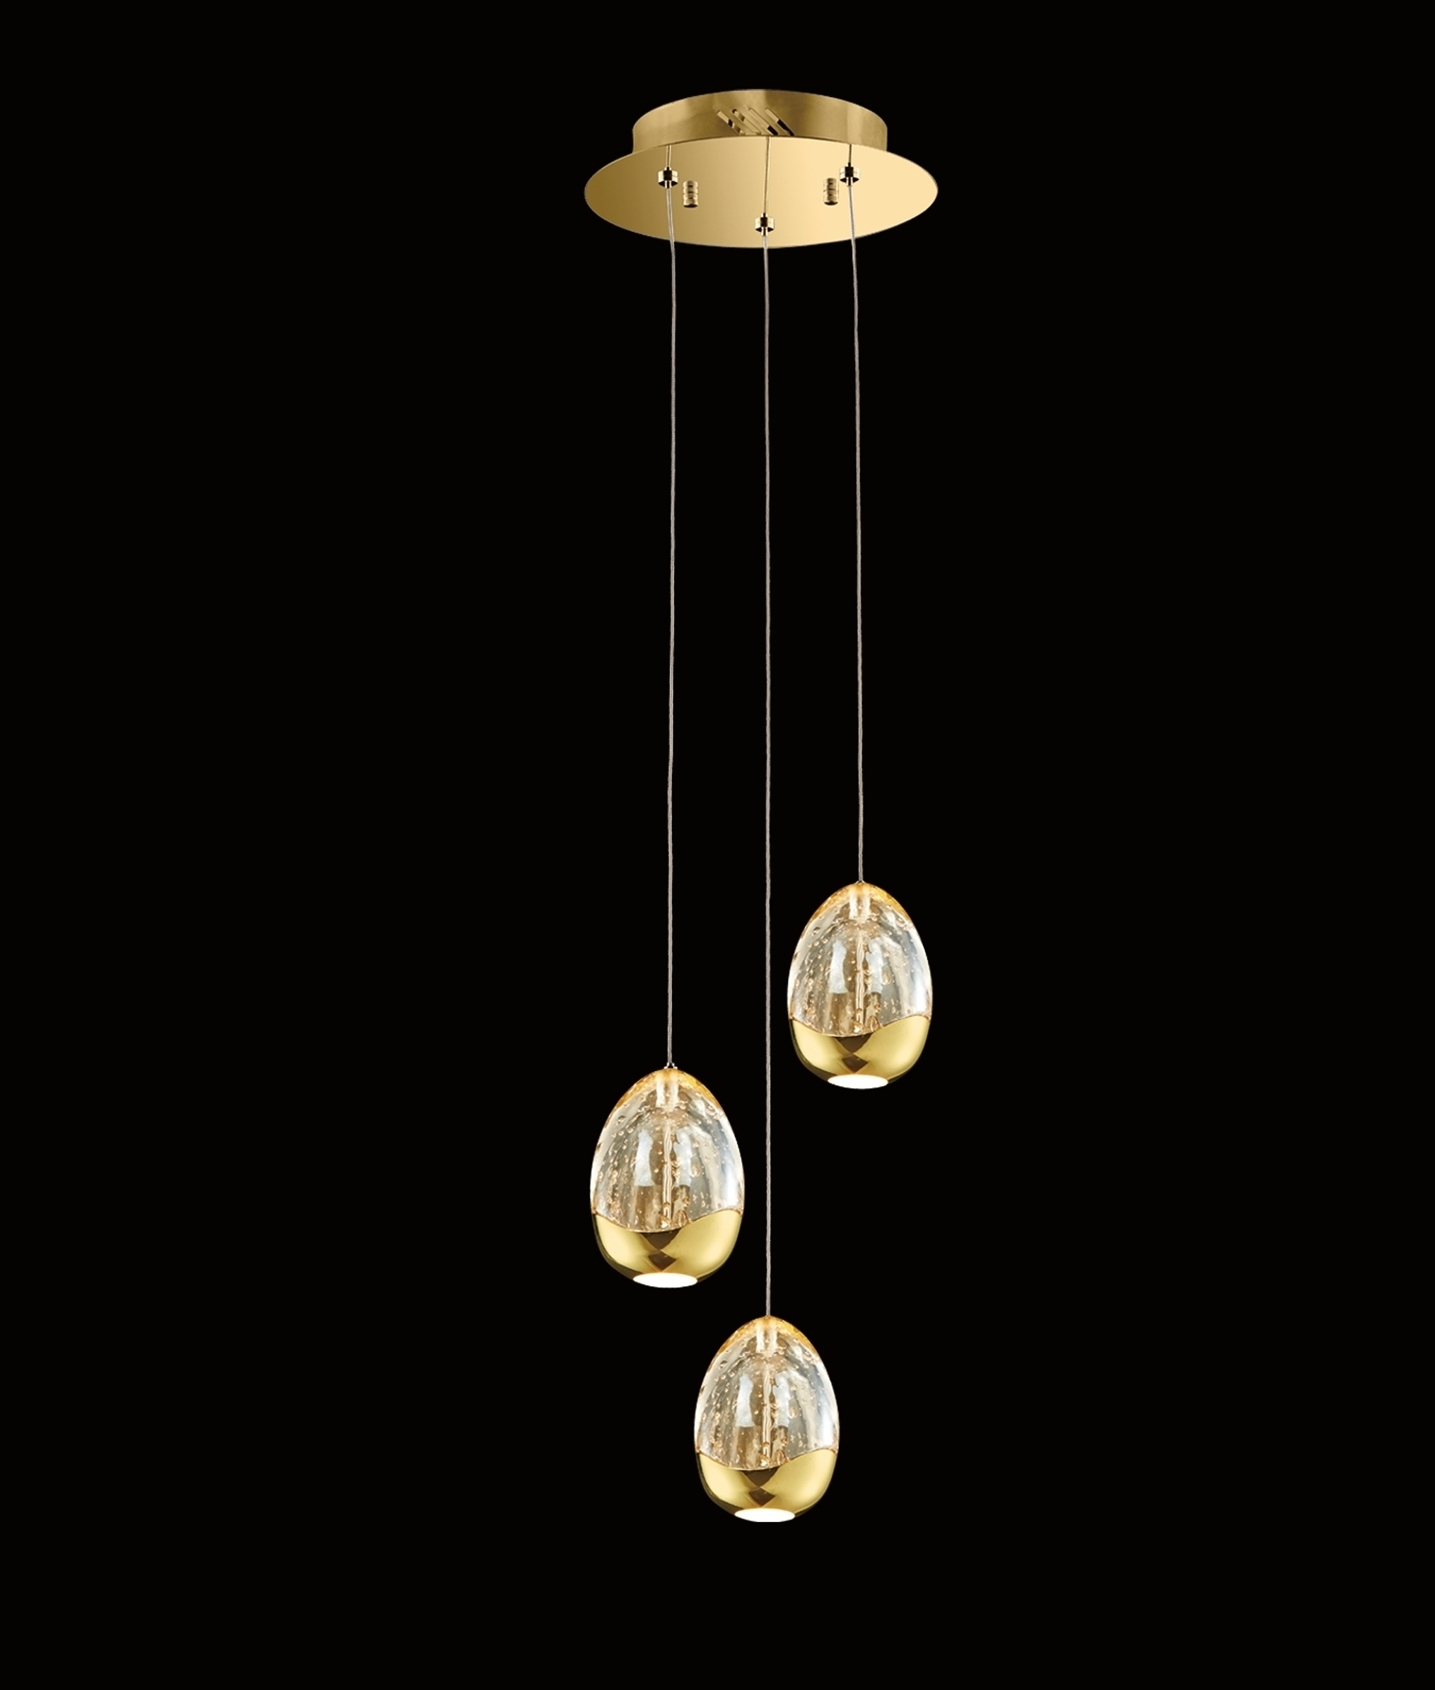 Battery Operated Ceiling Light Fixtures